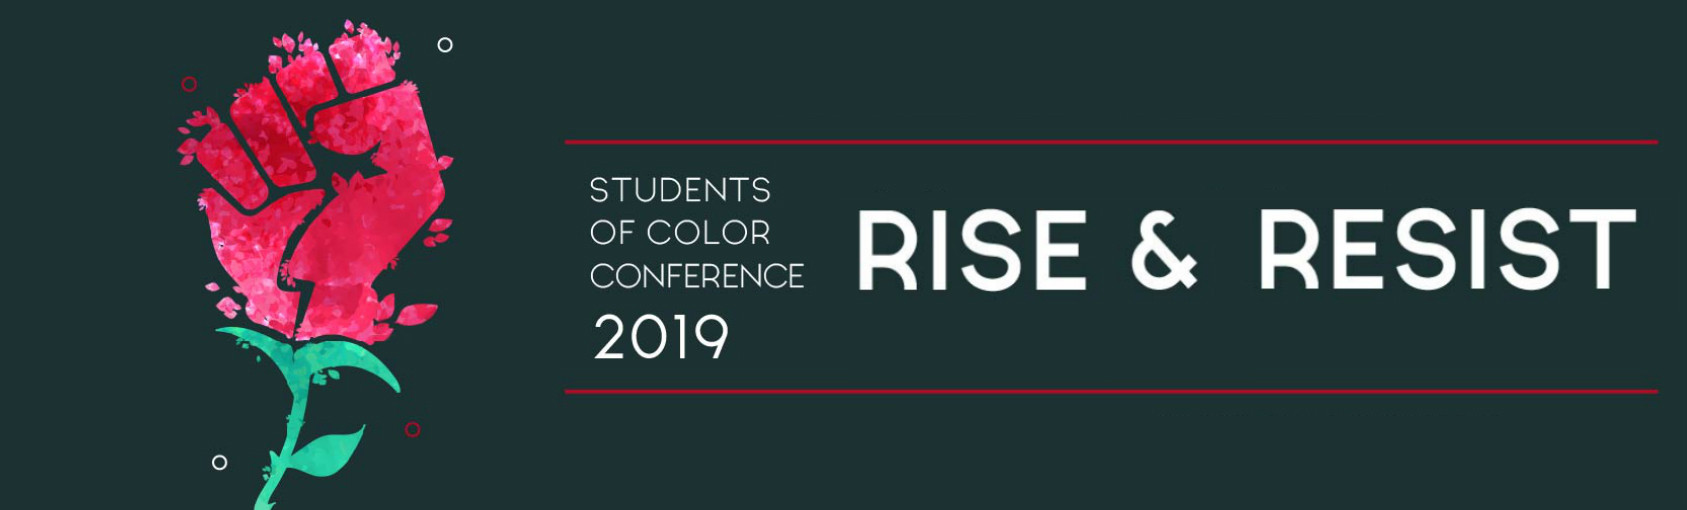 Rise & Resist at the Students of Color Conference Banner